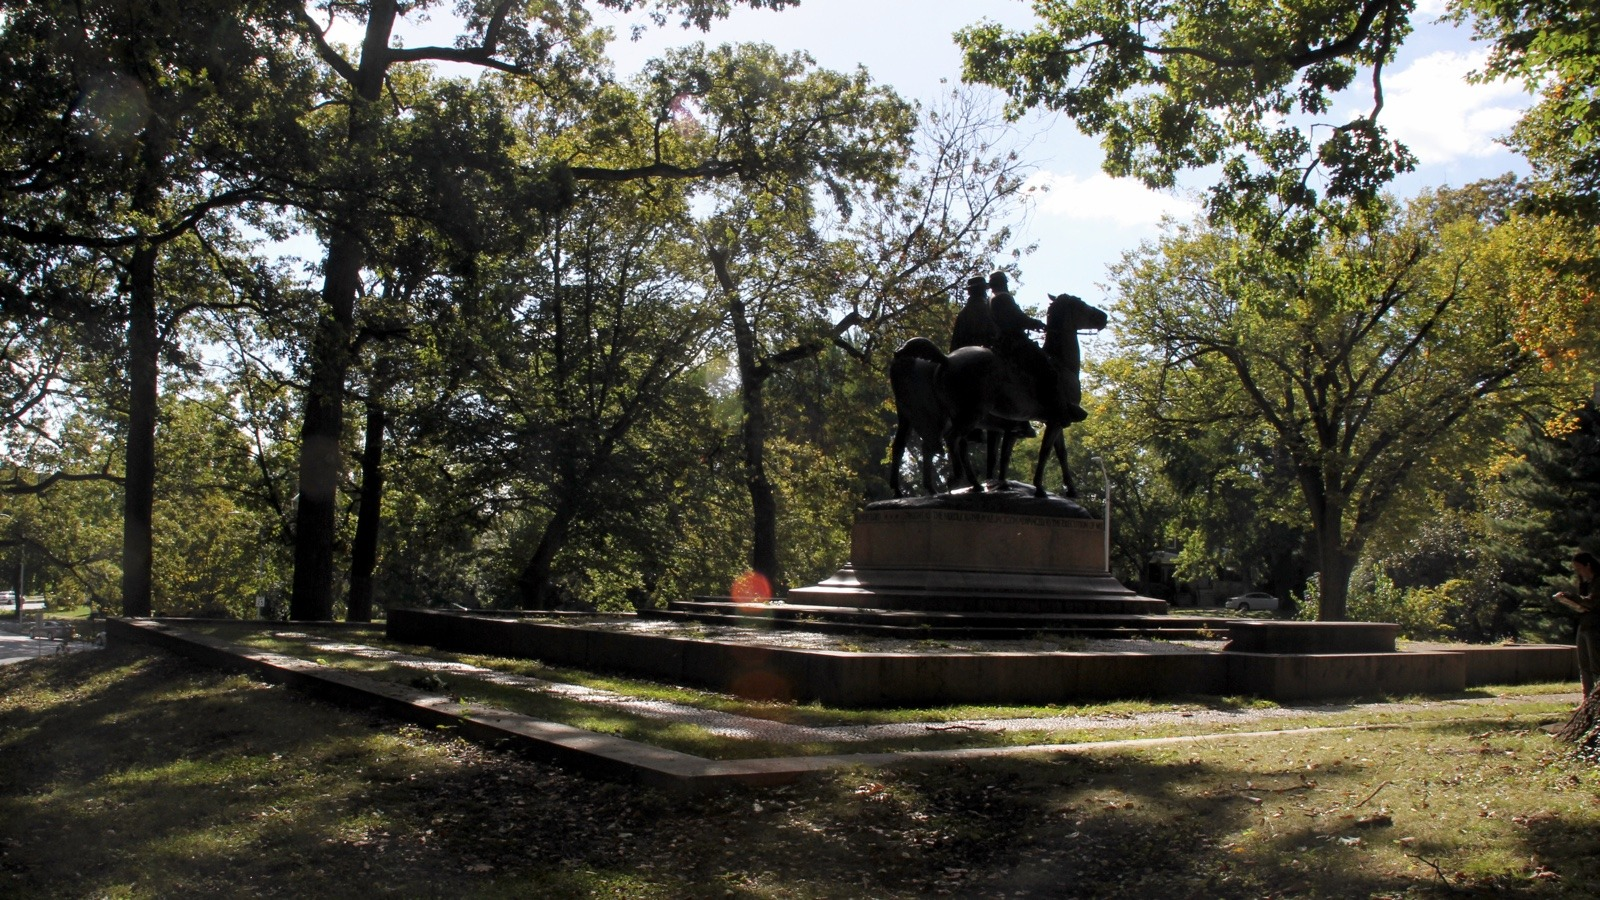 Monuments in Wyman Park Dell